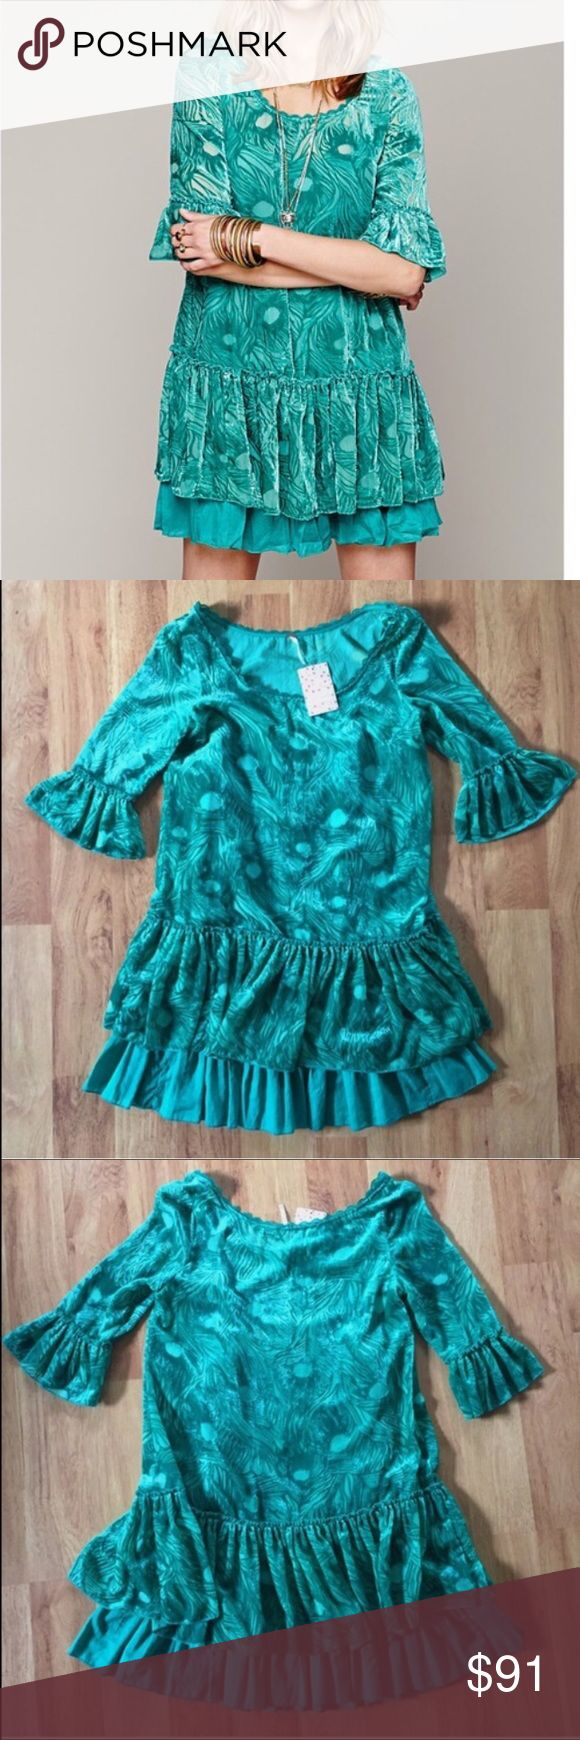 New Free People Boho Velour Dress Size XS Brand new, as seen in pictures! Tag price is $128.00. Fast same or next day shipping!📨 ⚜️I love receiving offers through the offer button!⚜️ Great condition, as seen in pictures! Fast same or next day shipping!📨 Open to offers but I don't negotiate in the comments so please use the offer button😊 Free People Dresses